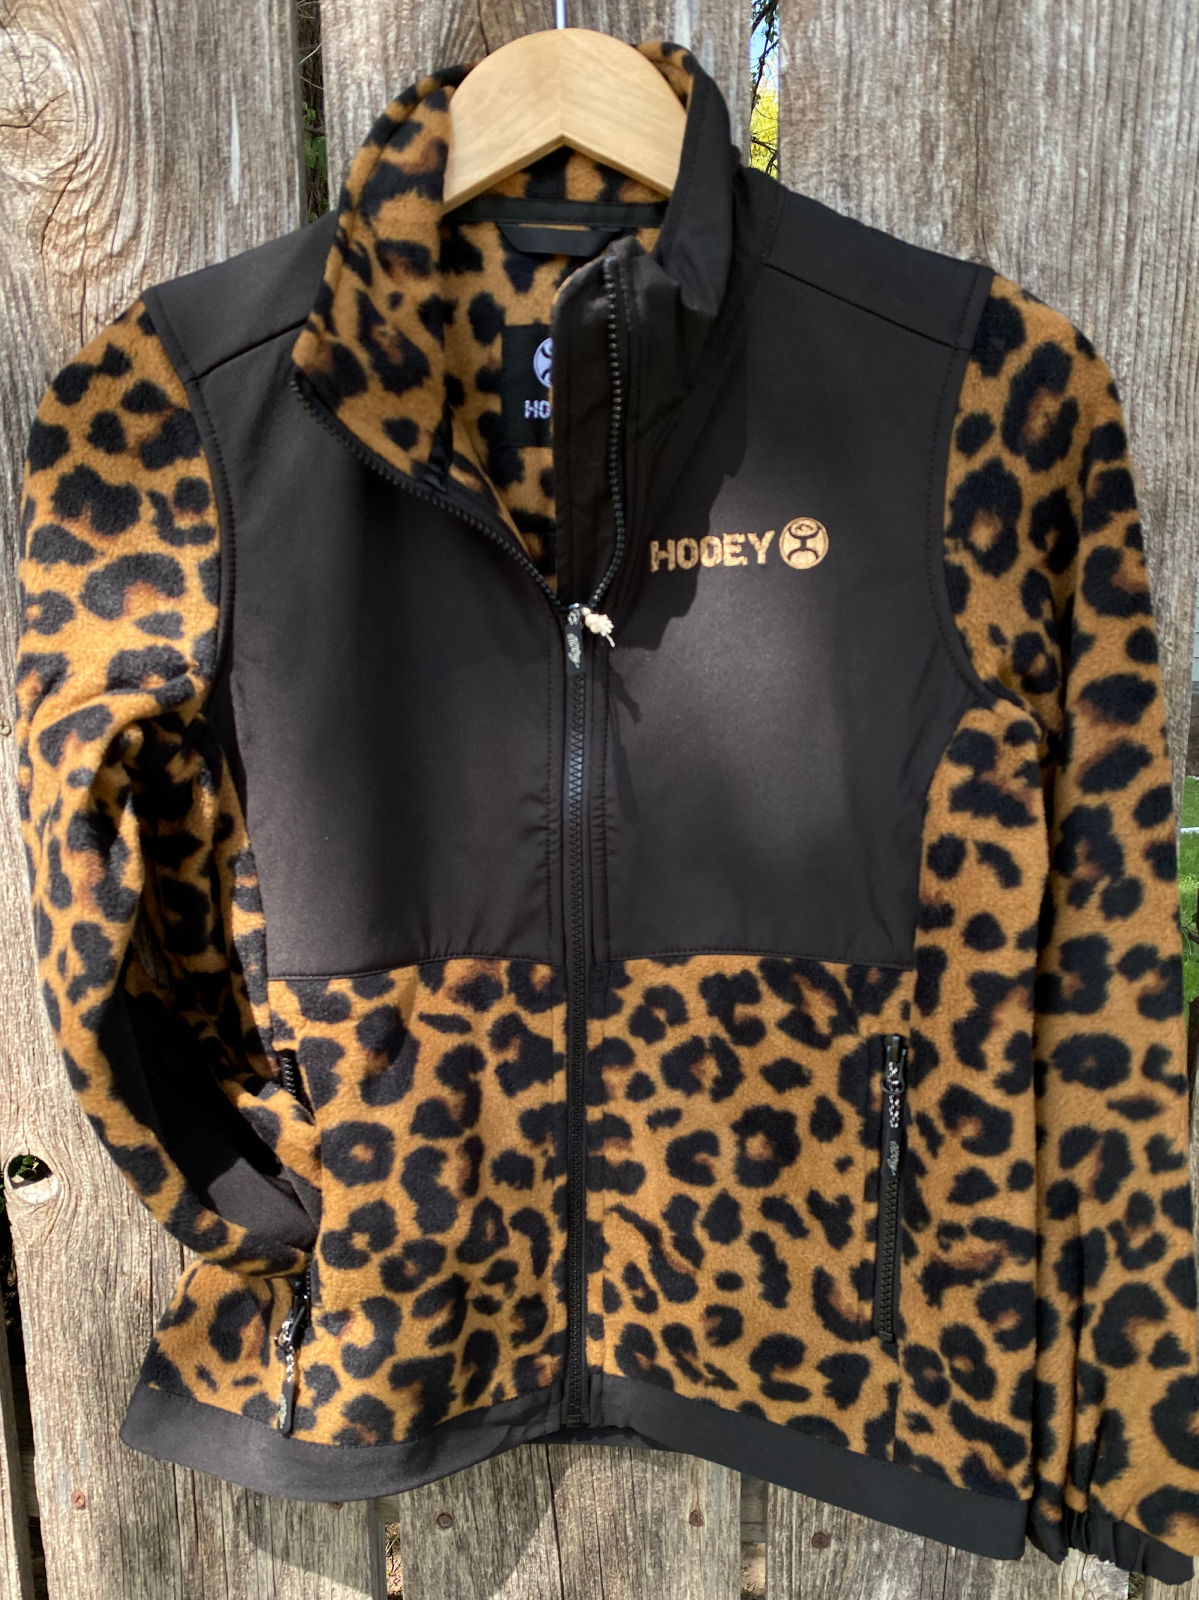 Youth Cheetah Tech Jacket from Hooey